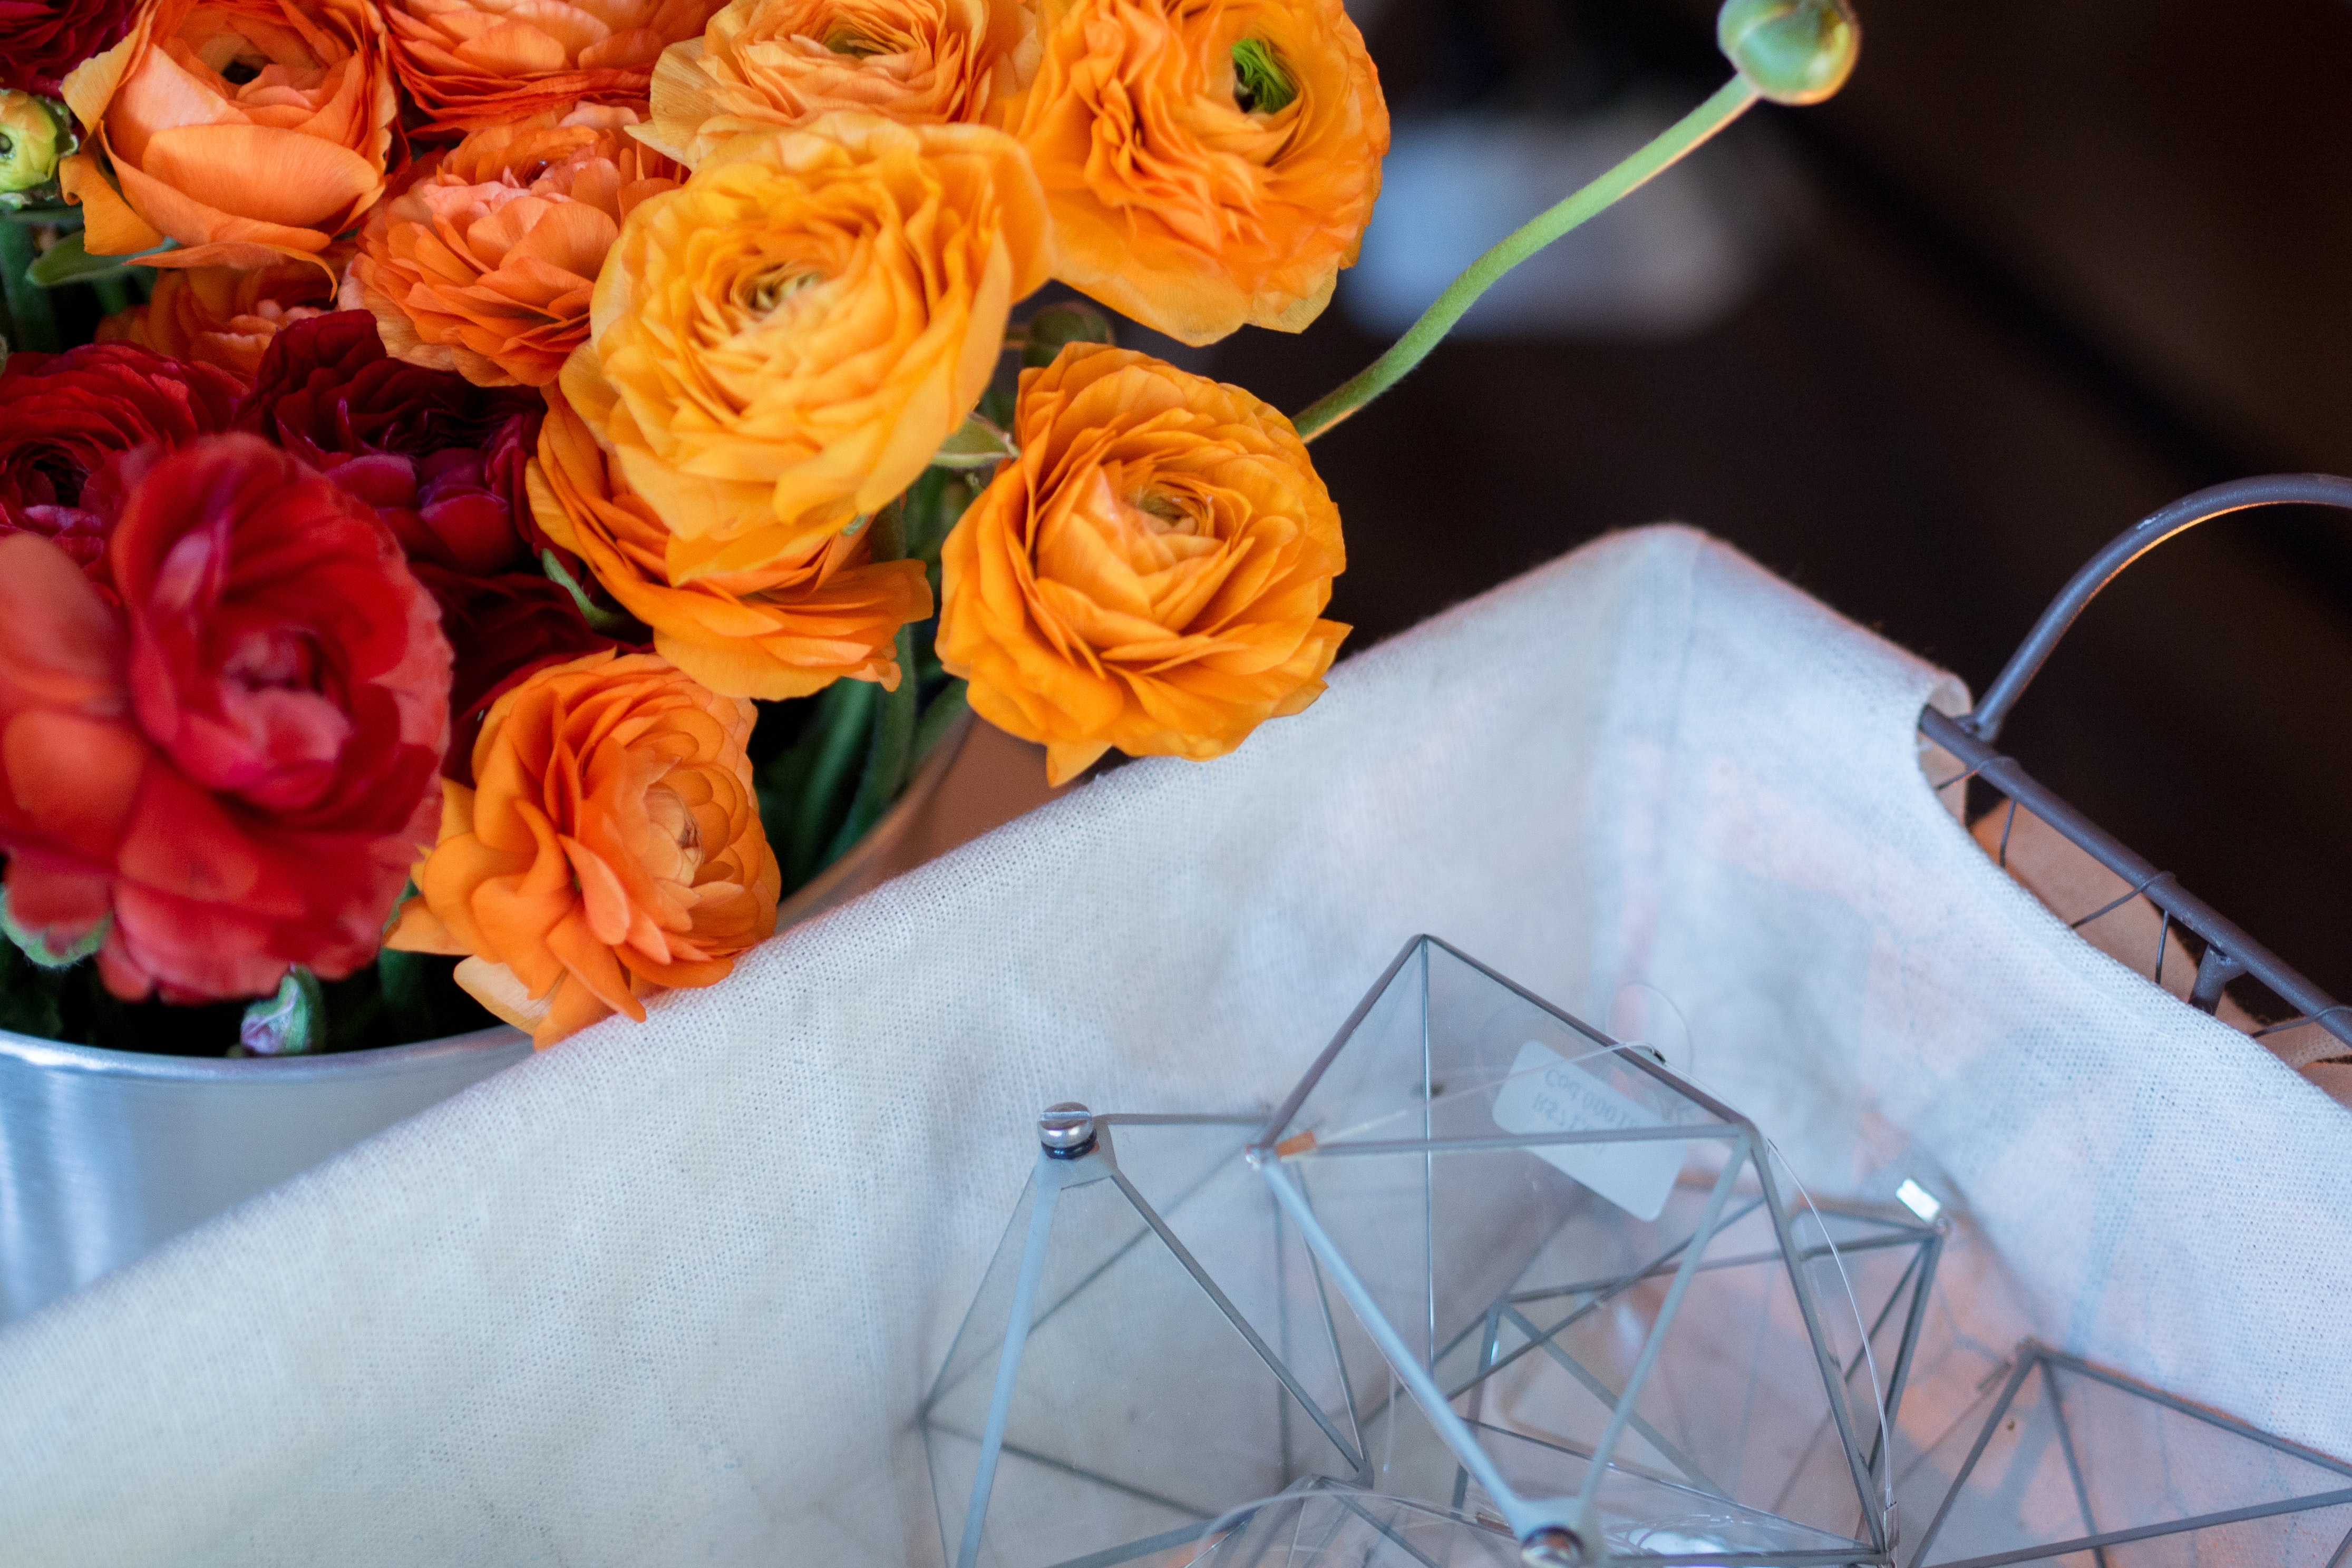 A large bouquet of red and orange roses in a bucket next to a basket with glass prisms